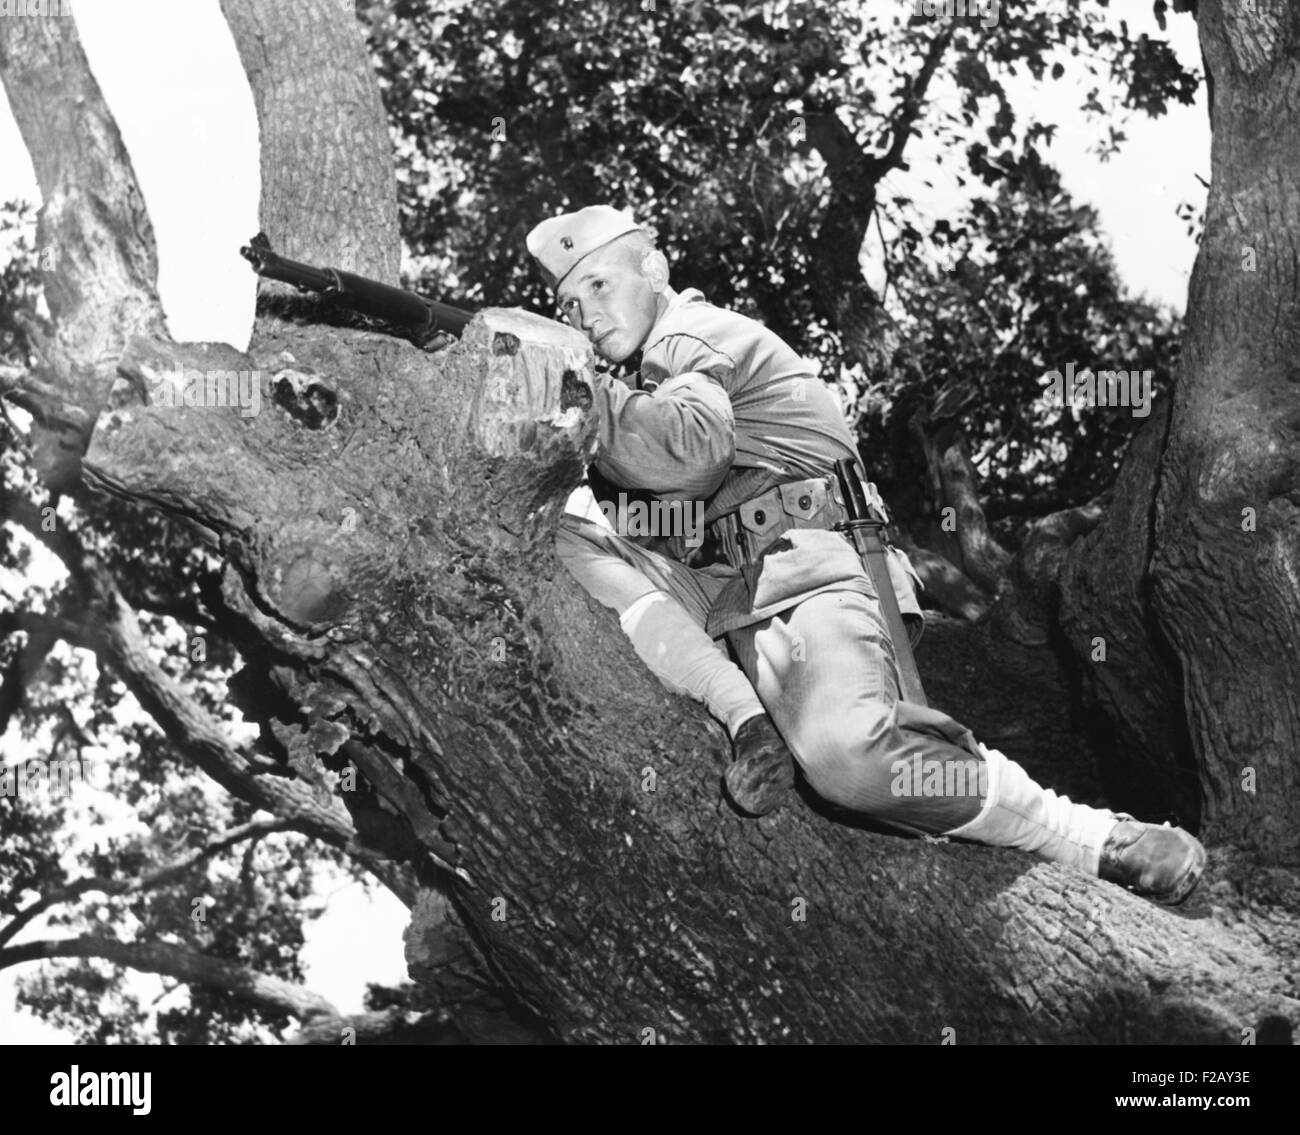 Stephen P. Hopkins, son of Harry Hopkins, in basic training at Parris Island. He is in a tree with his M-1 rifle. Stock Photo